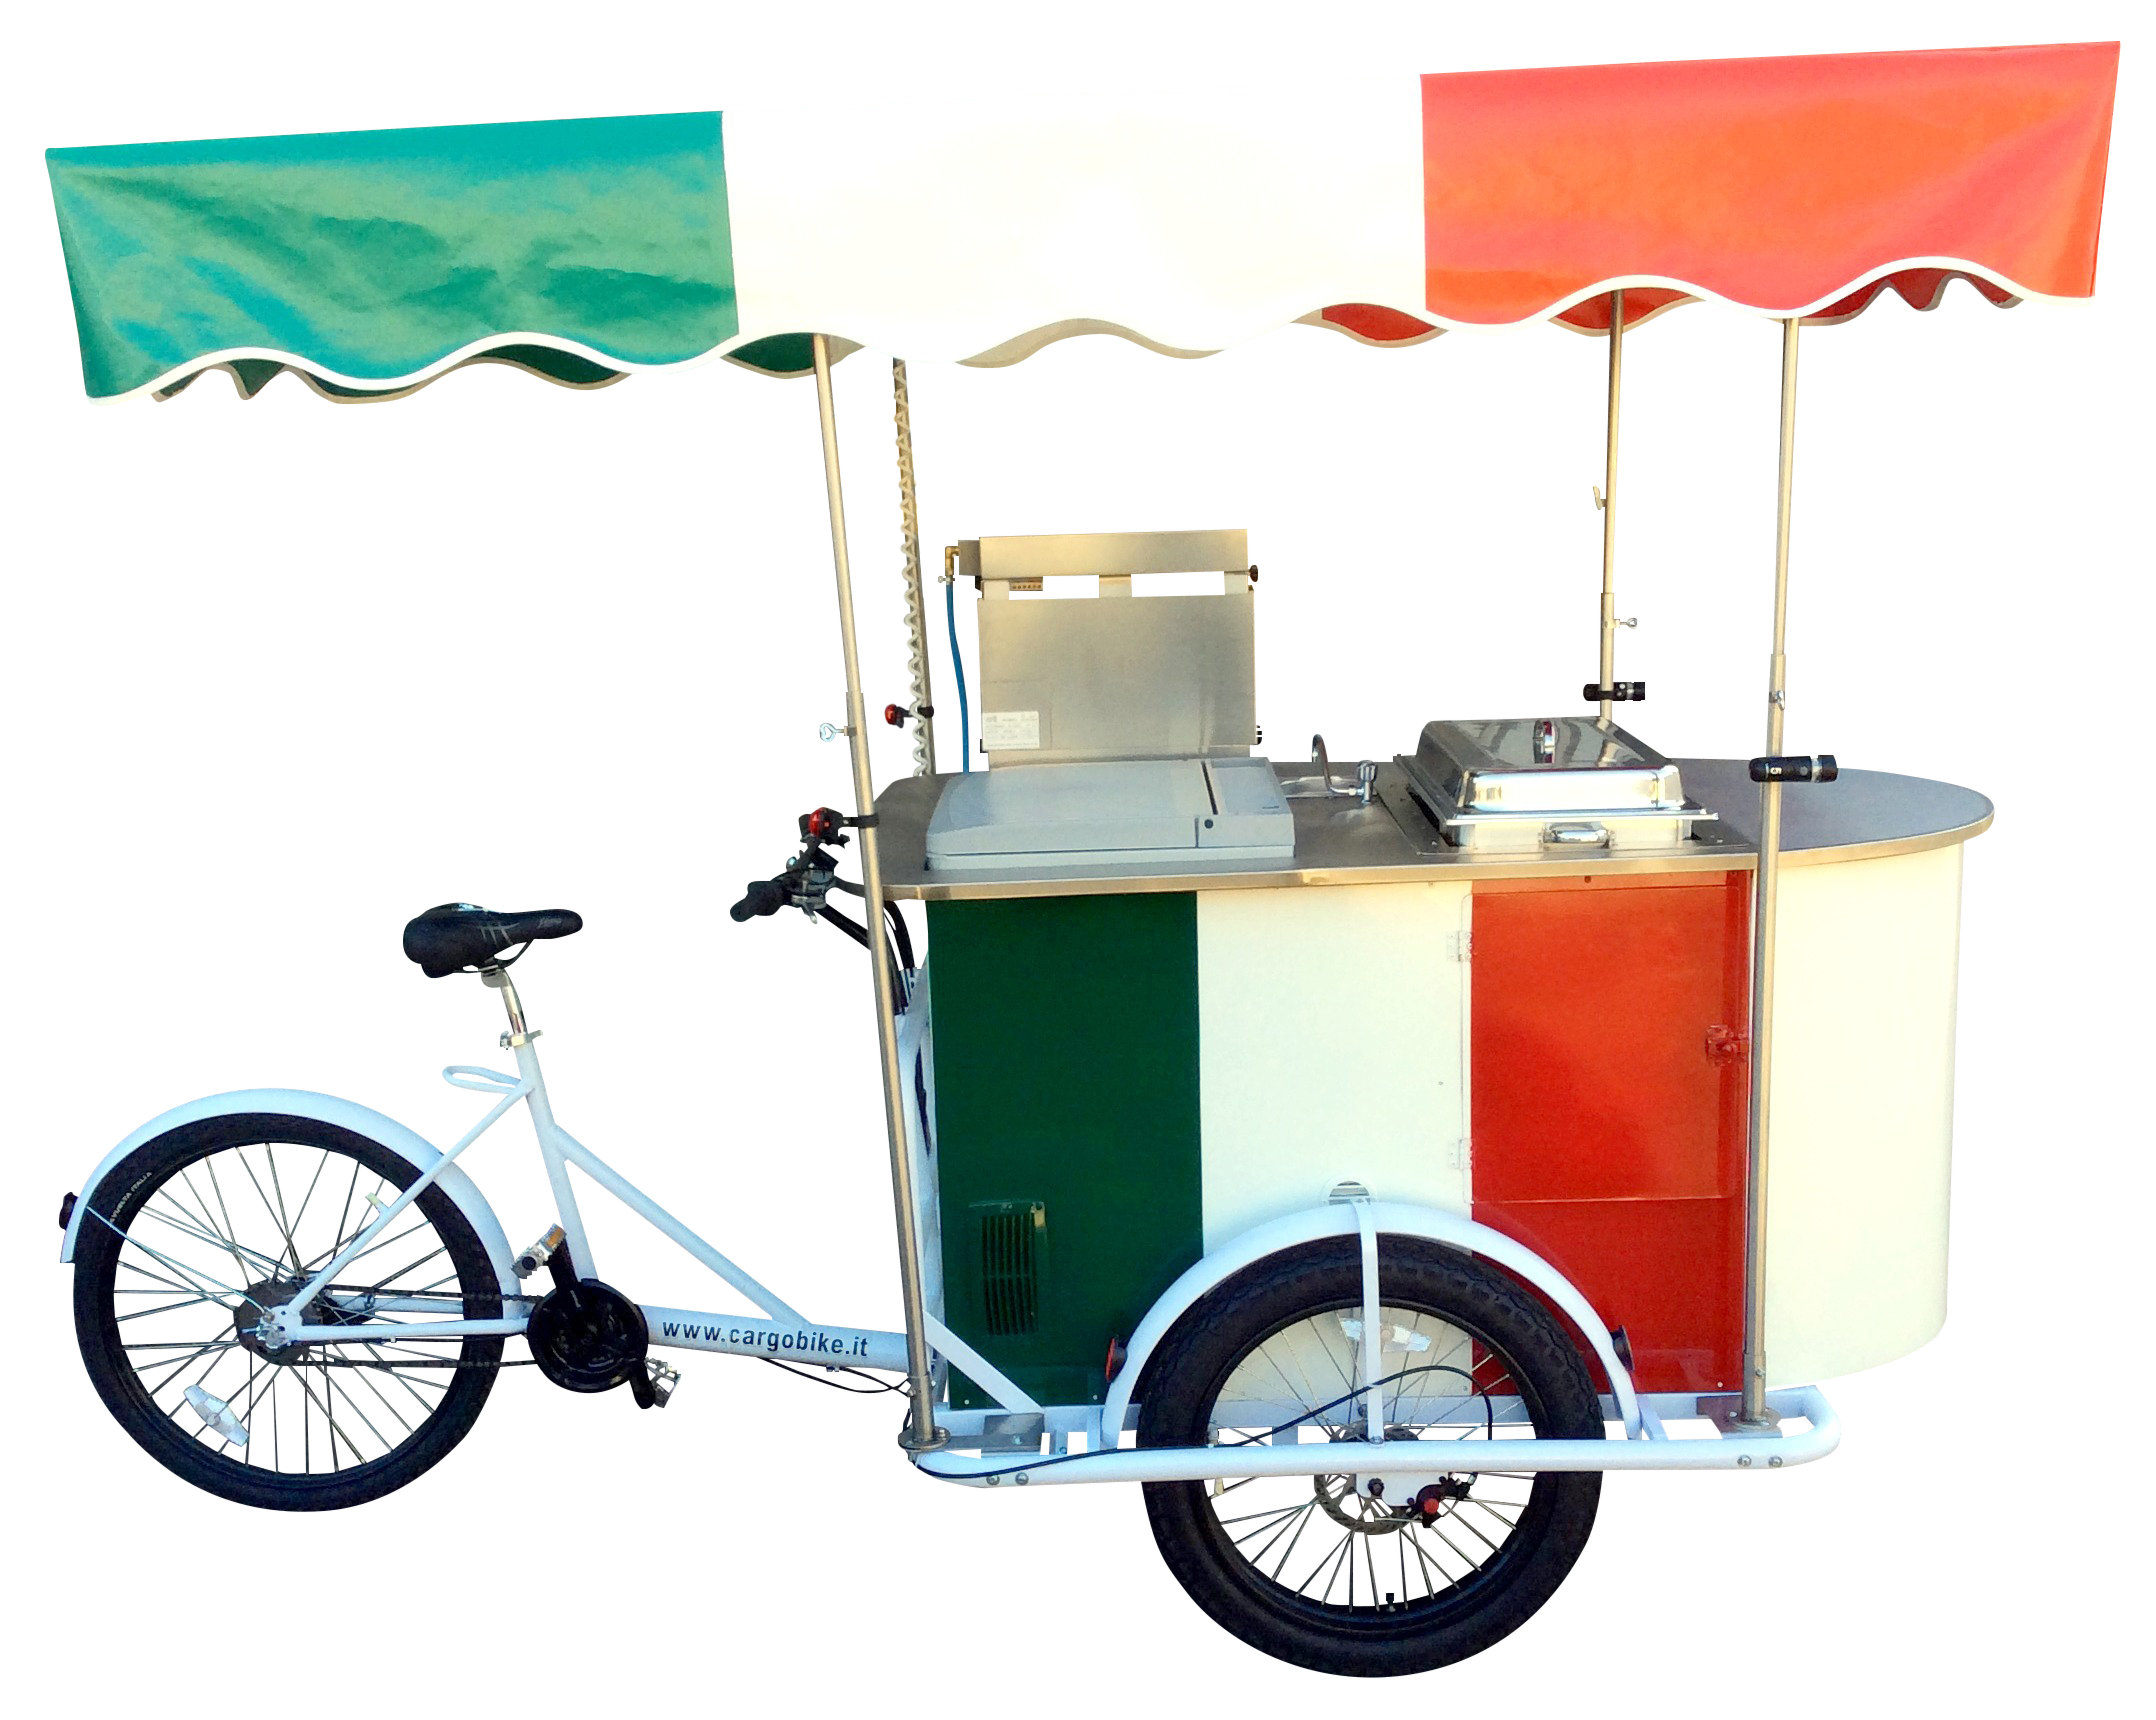 STREET_FOOD_GRILL_REVIVAL_TRICICLO_CARGO_BIKE_21